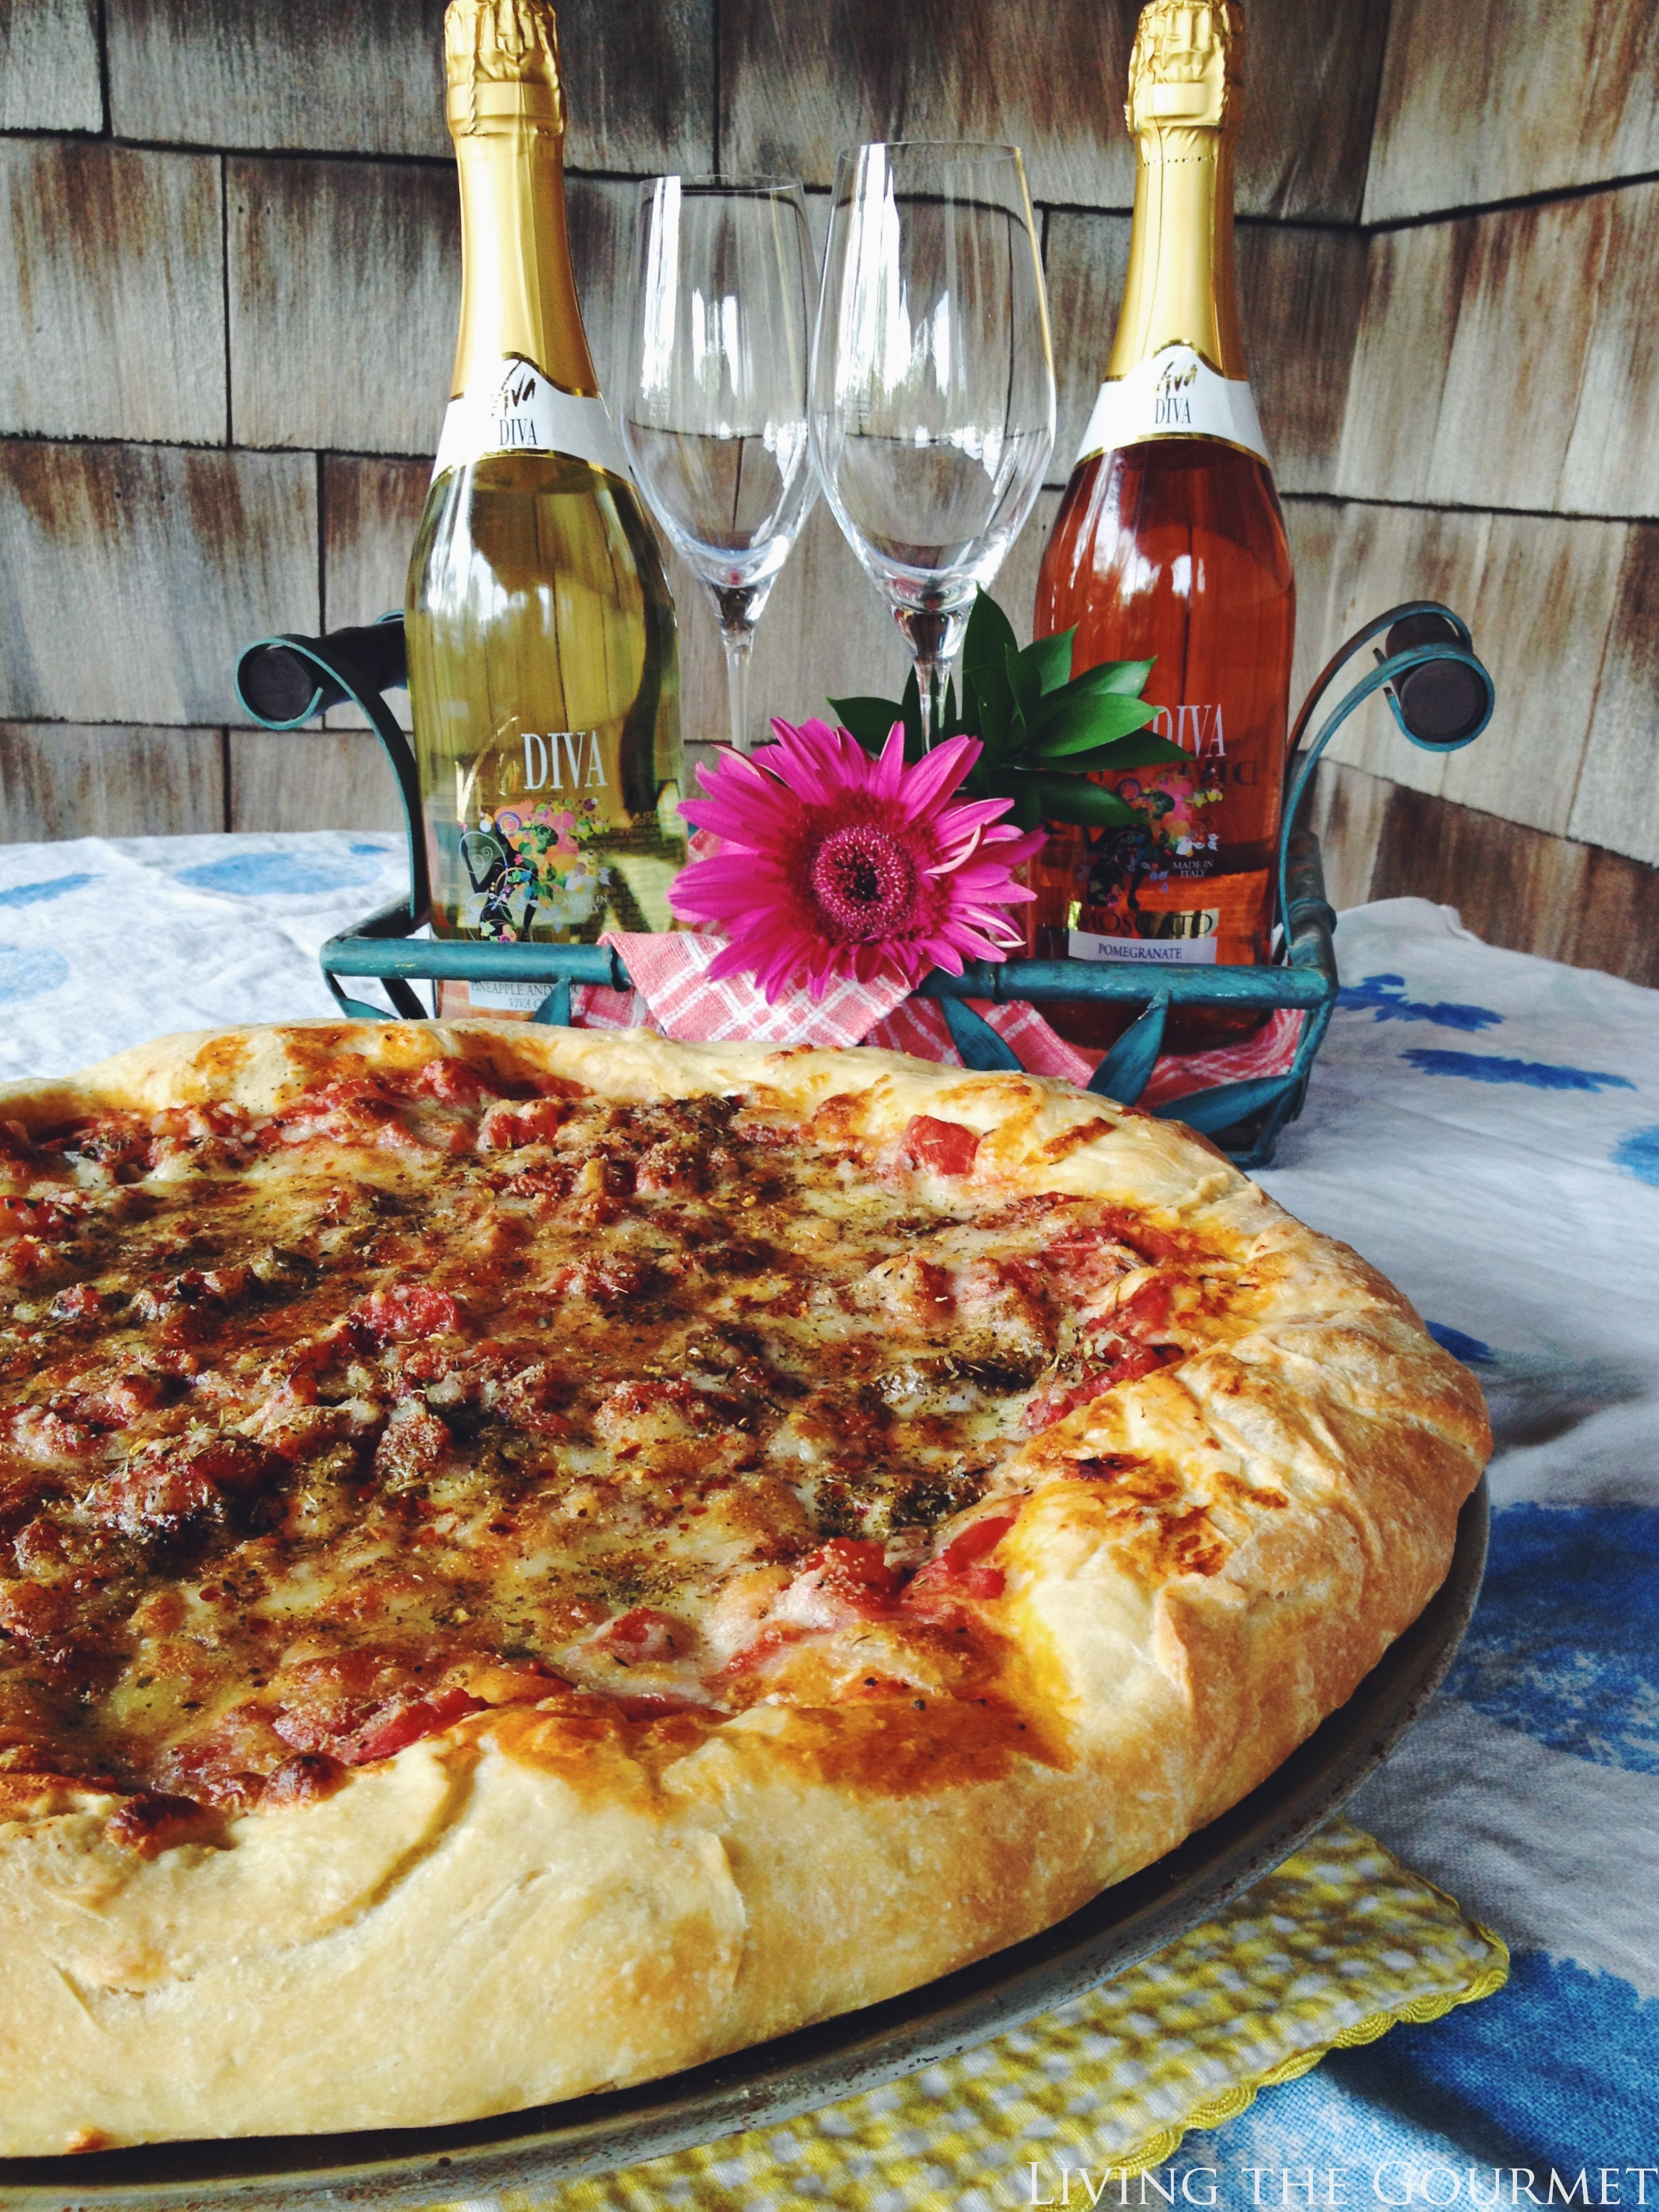 Living the Gourmet: Pizza & Viva Diva Sparkling Wine